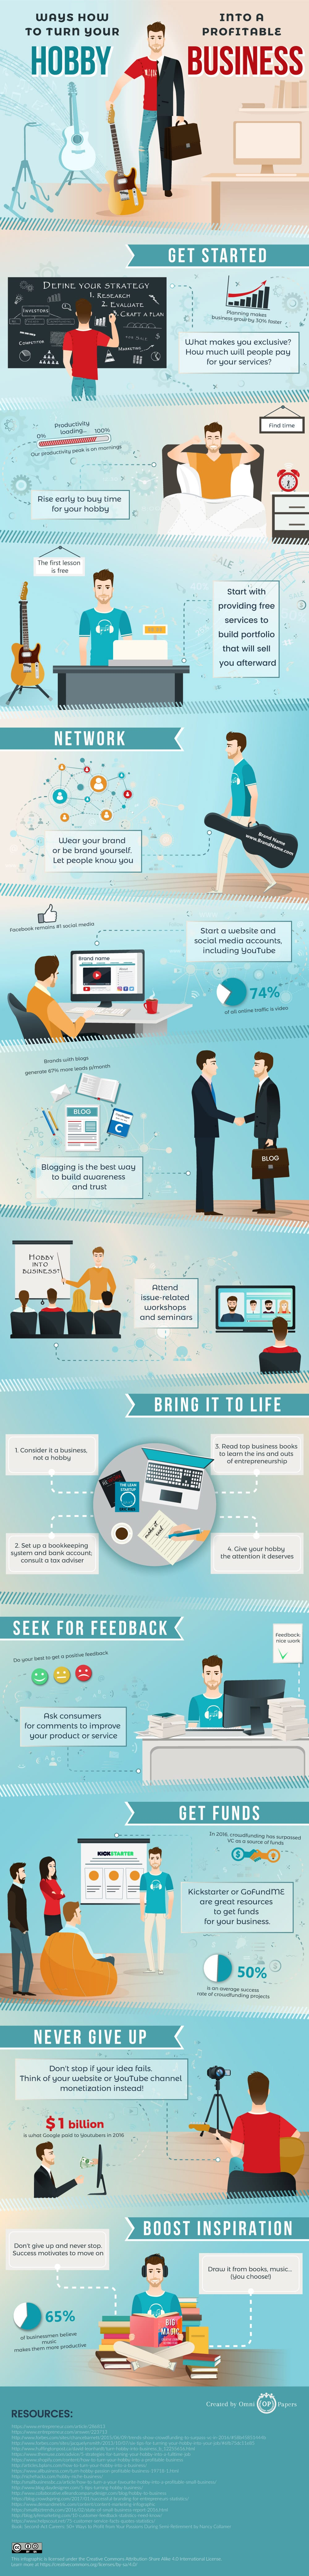 How To Make Money With Your Hobby [Infographic]